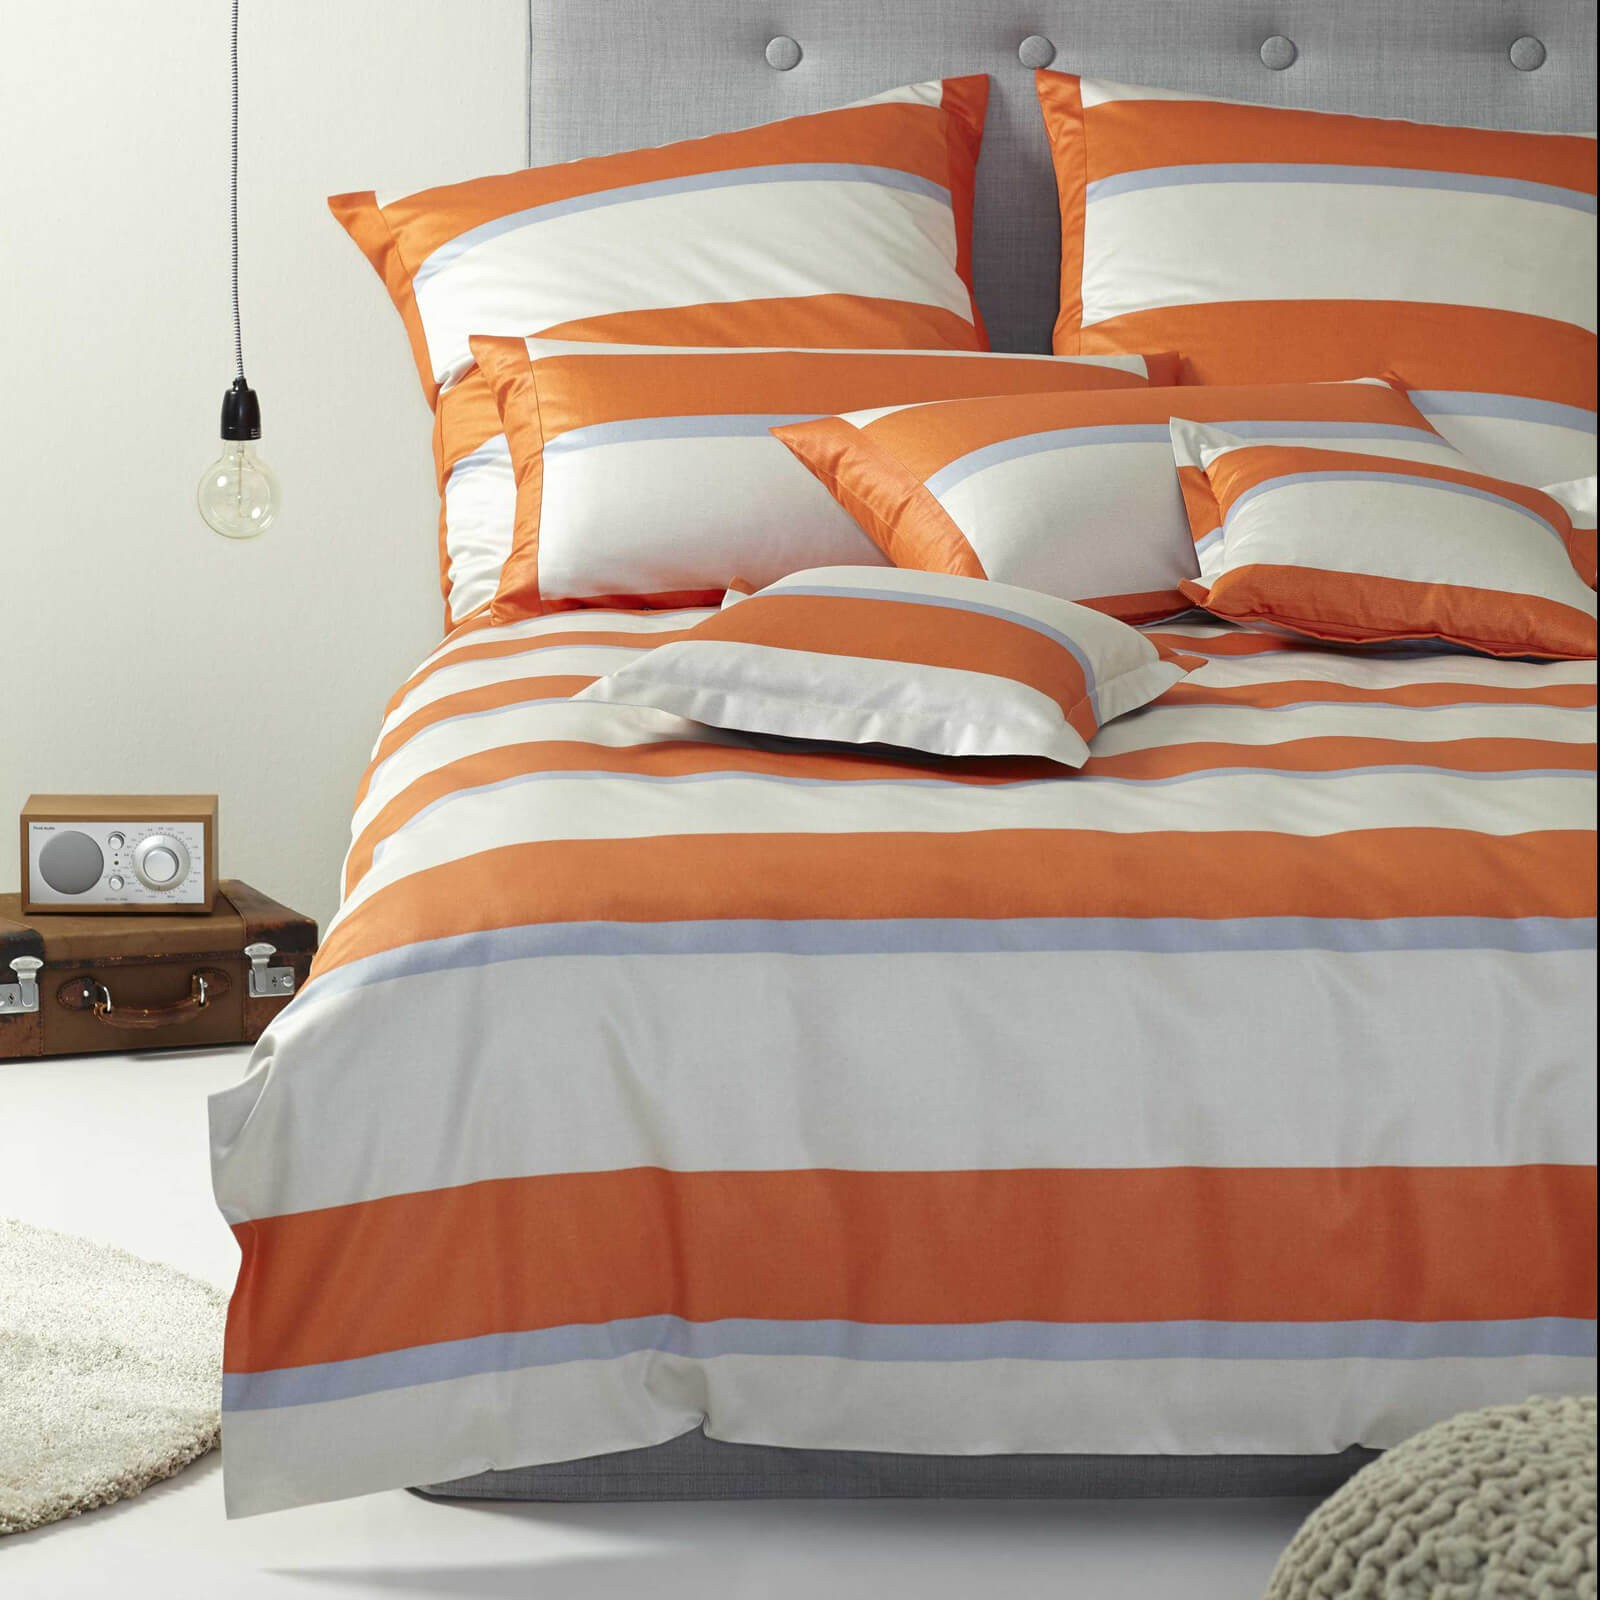 bettw sche elegante broadway 2122 orange. Black Bedroom Furniture Sets. Home Design Ideas